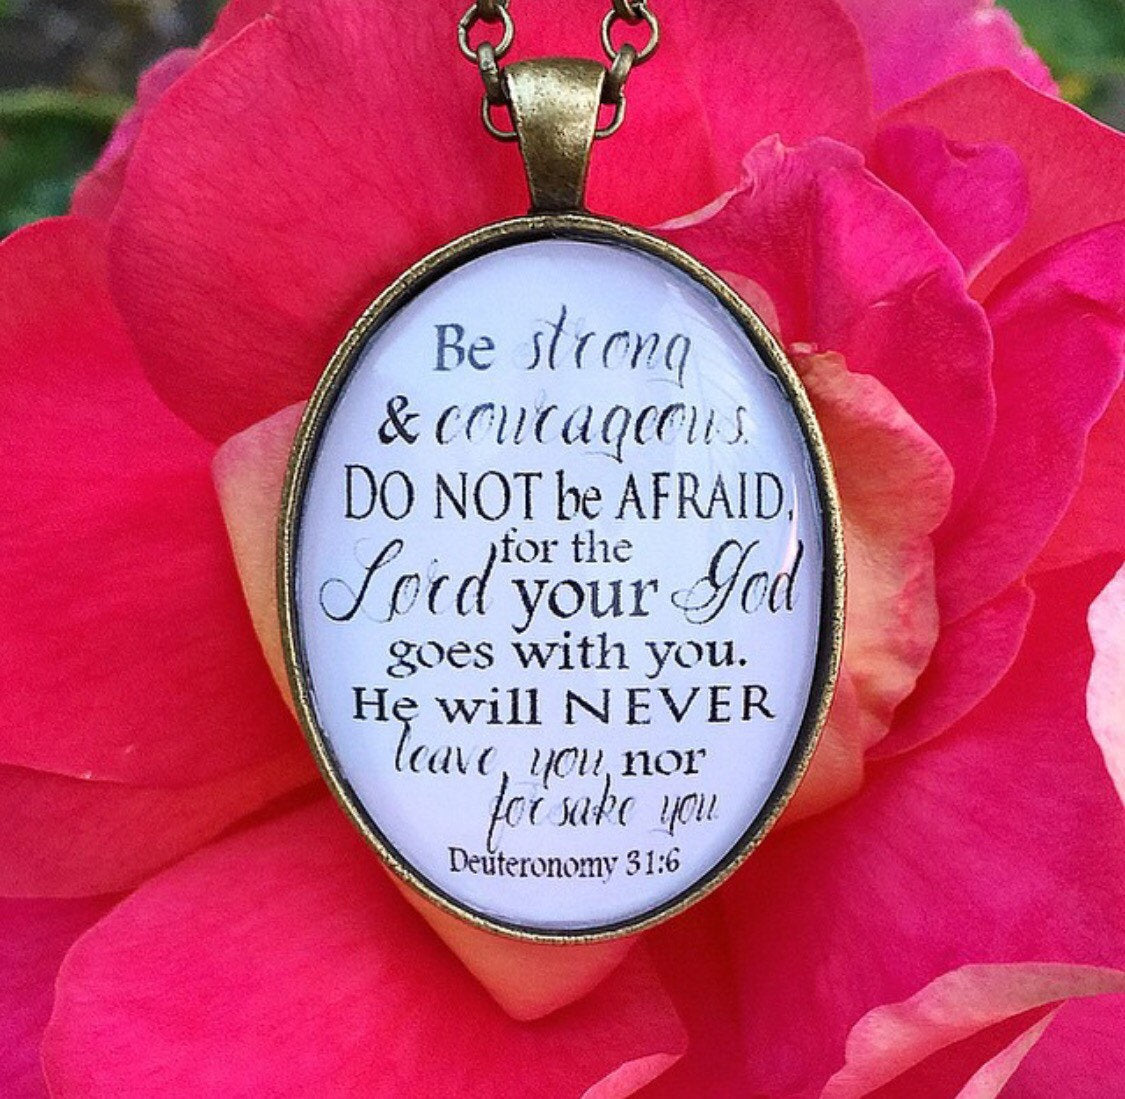 Deuteronomy 31:6 Pendant Necklace - Redeemed Jewelry